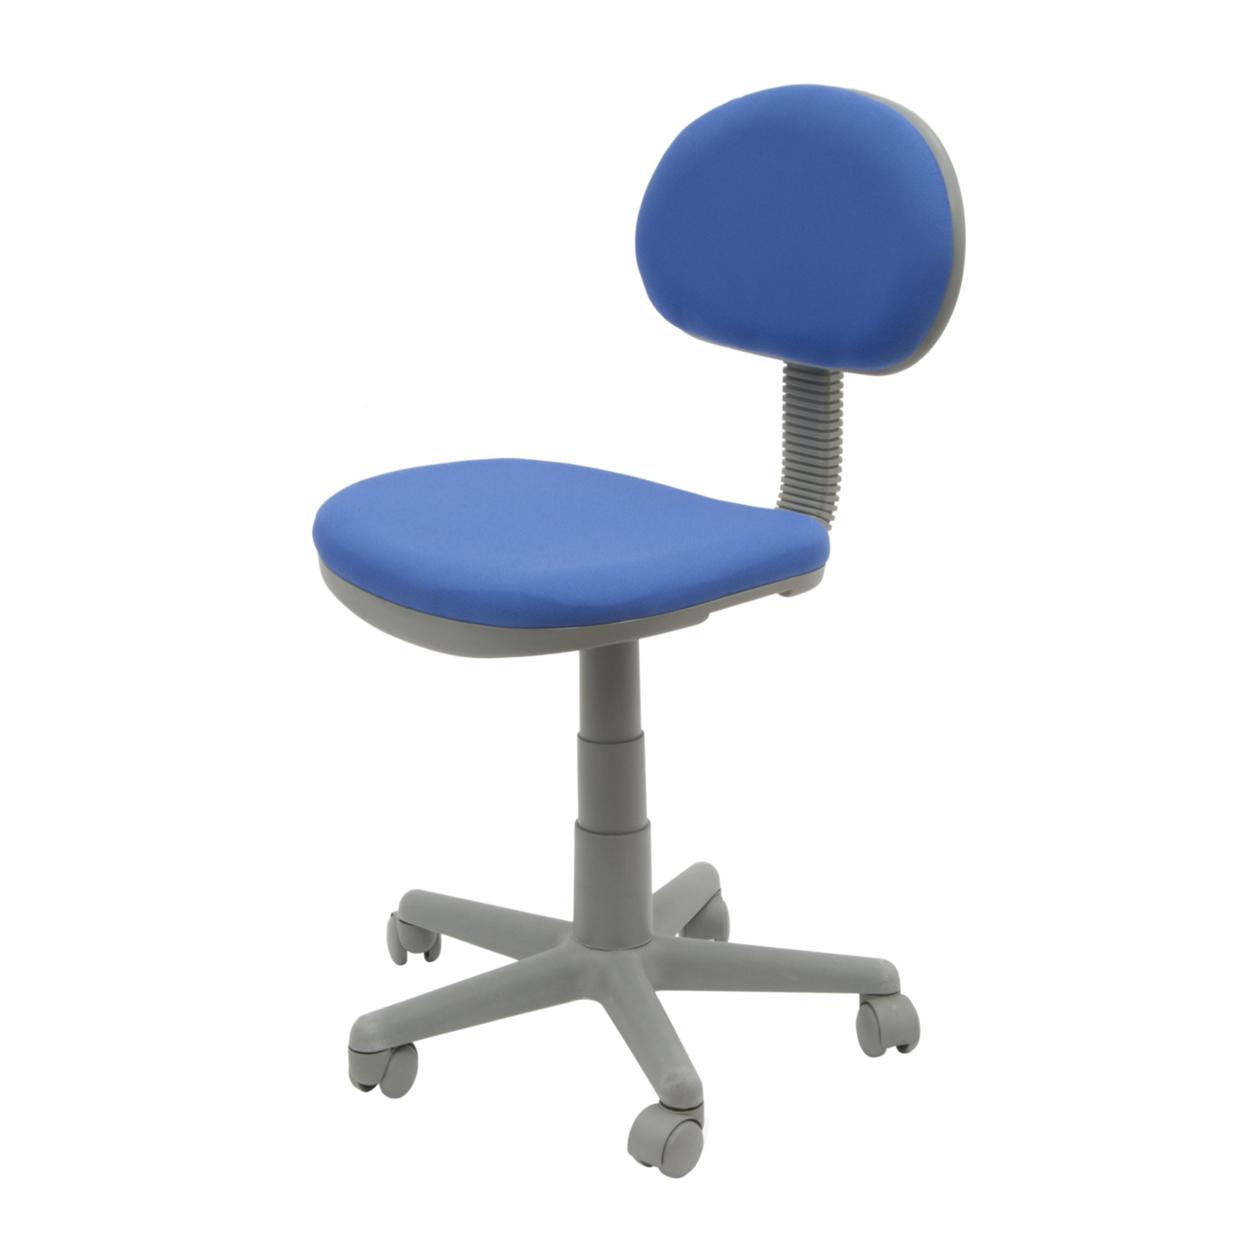 Offex Home Office Deluxe Task Chair - Blue/Gray игрушка ecx ruckus gray blue ecx00013t1